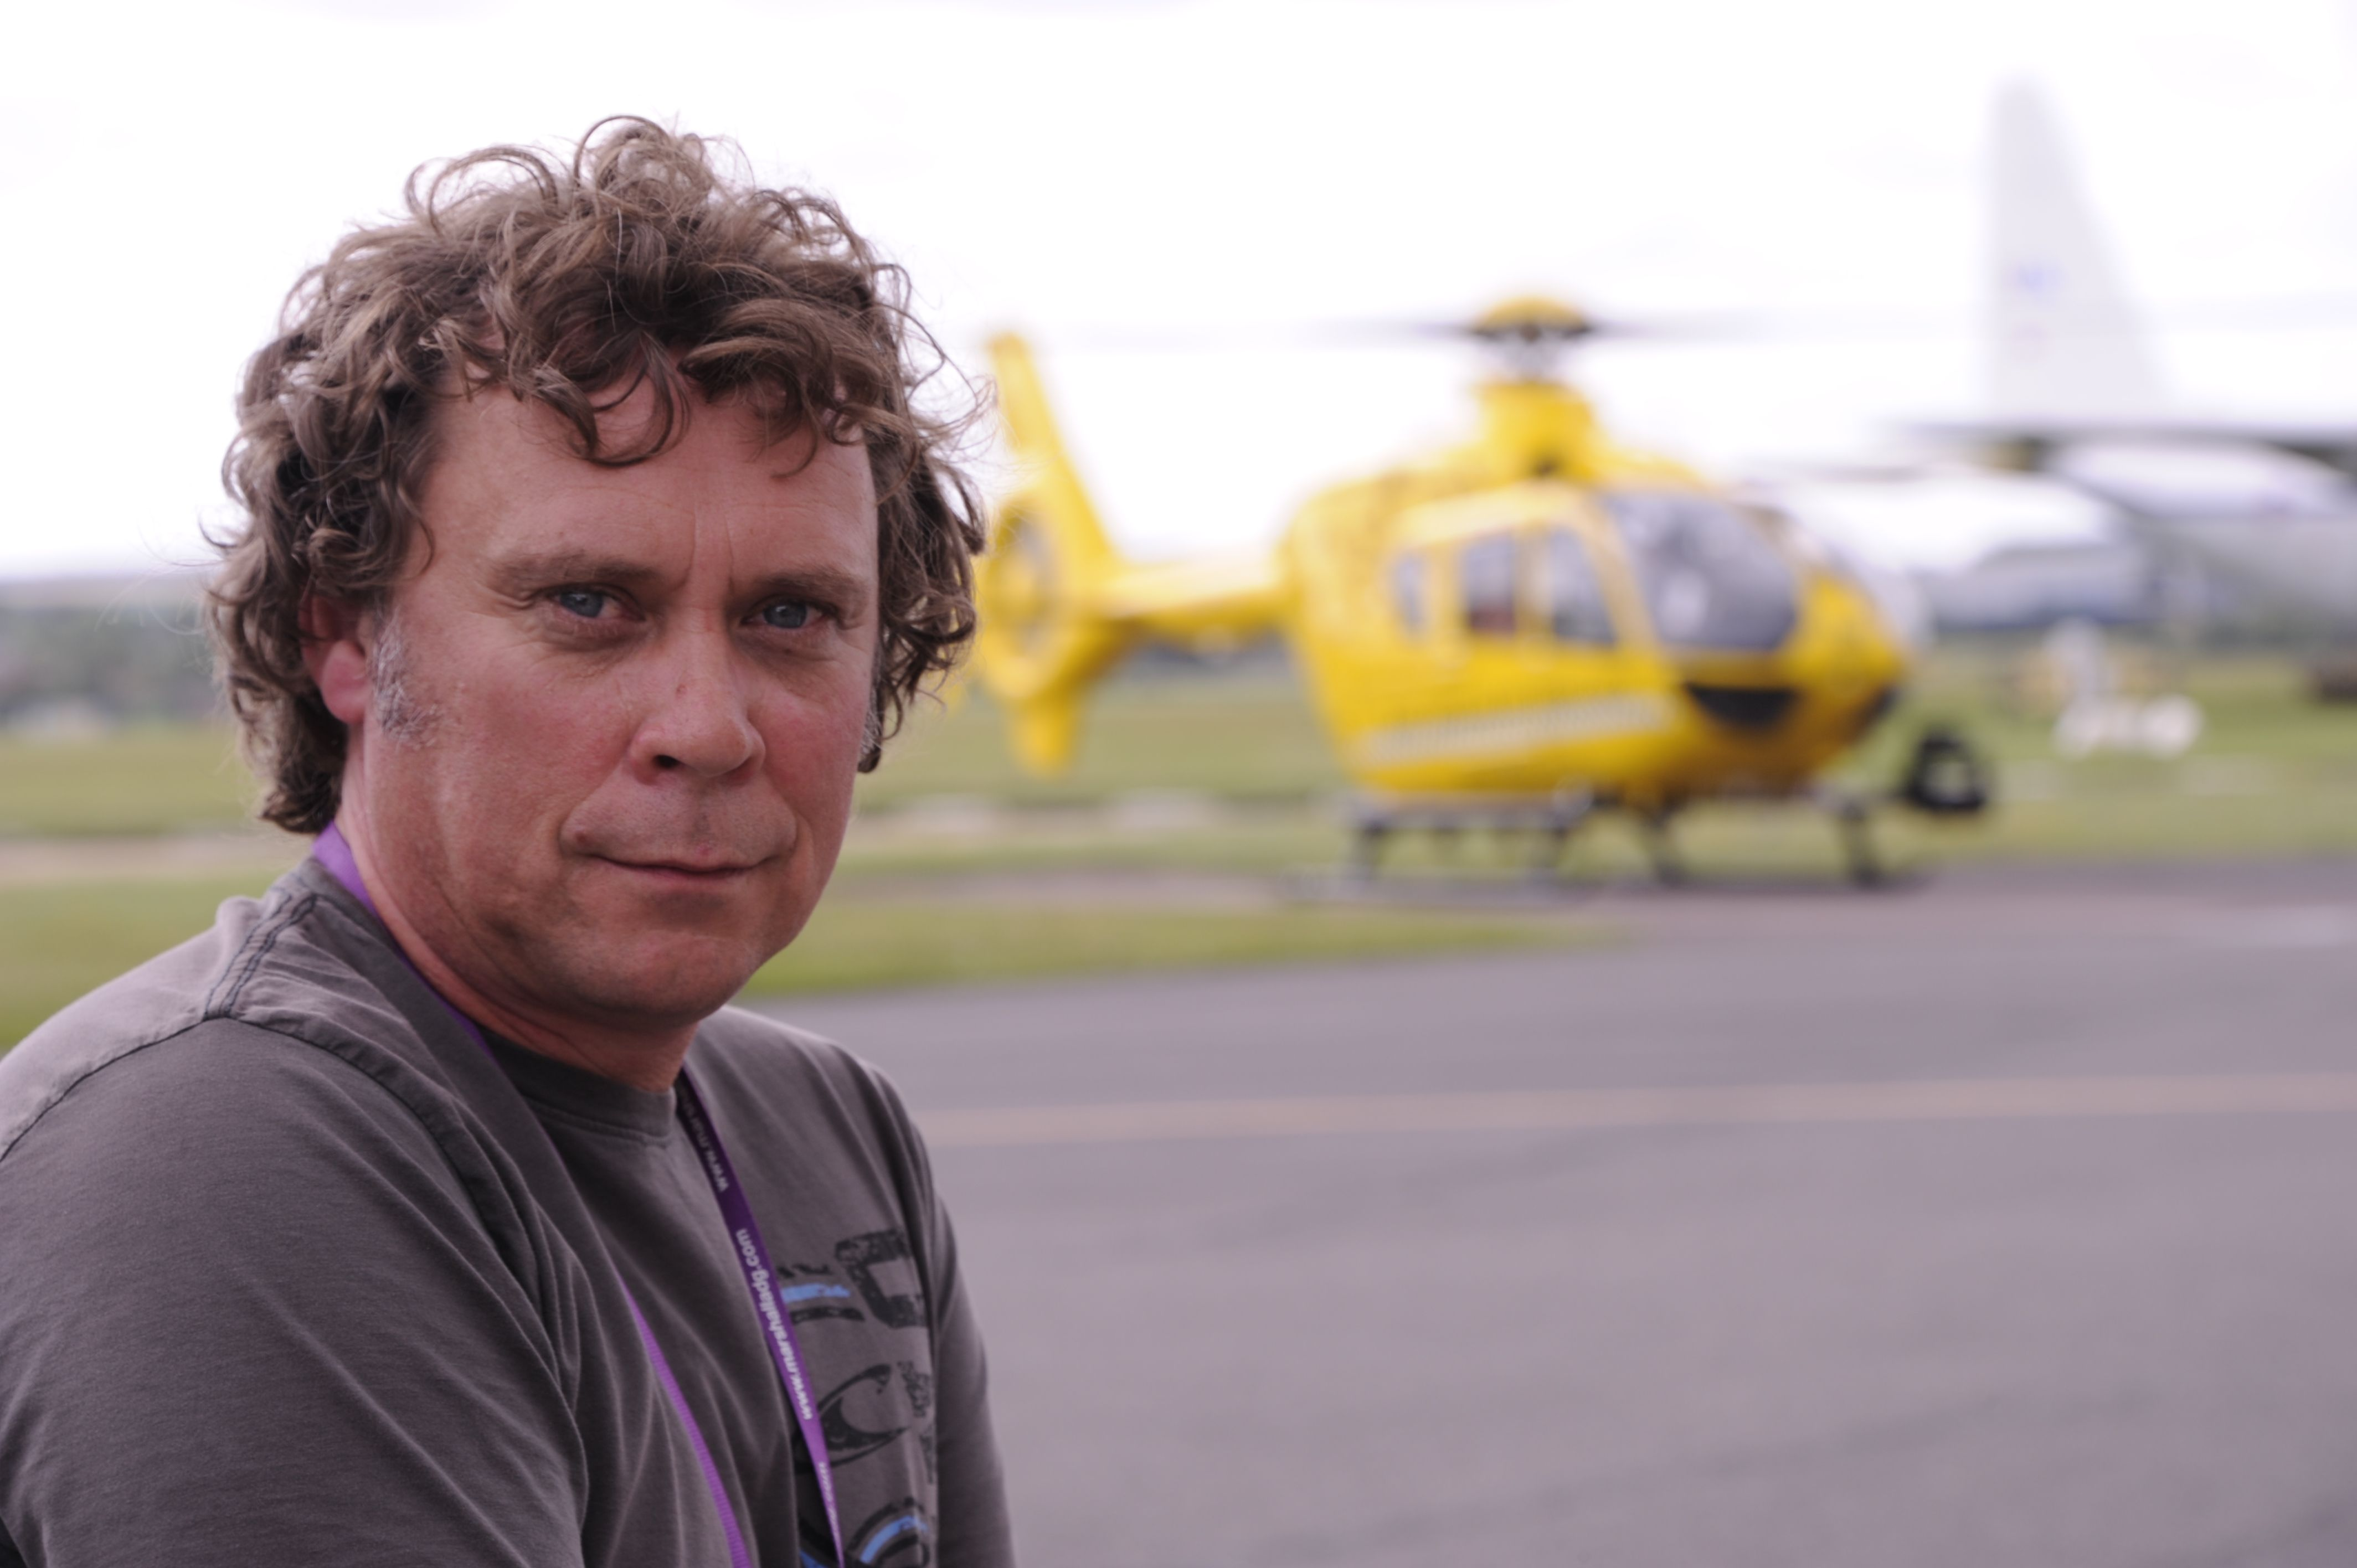 """August 2012: Kitesurfer, Mark Warren was launching his rig when he was caught by a freak gust of wind and slammed into the sea wall. He sustained life-threatening injuries, including a ruptured aorta, and was airlifted to Addenbrookes Hospital for life-saving surgery. He said: """"If it wasn't for the skill of the first paramedic on scene and the EAAA team I would have died."""" A year later, he visited the EAAA with his wife and son and the 5-month-old daughter he would never have met."""